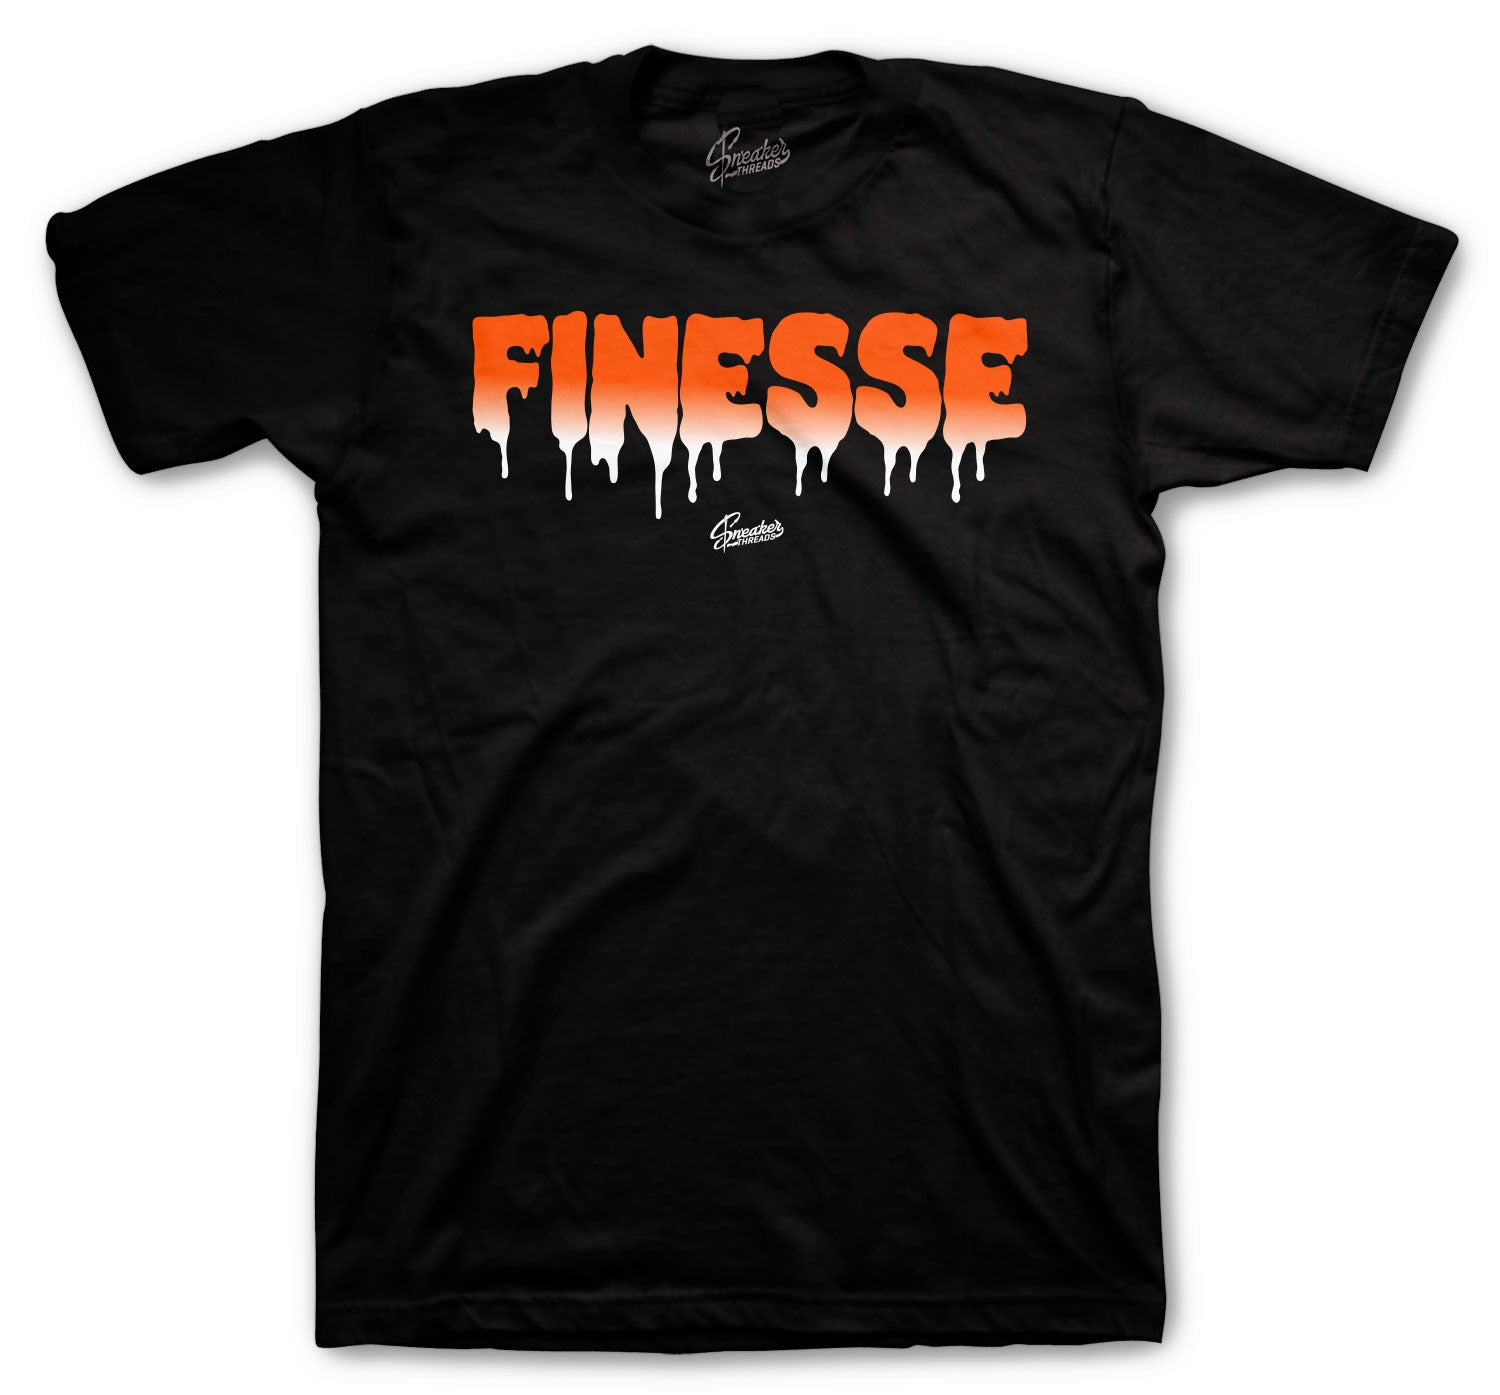 Jordan Starfish Finesse Shirt